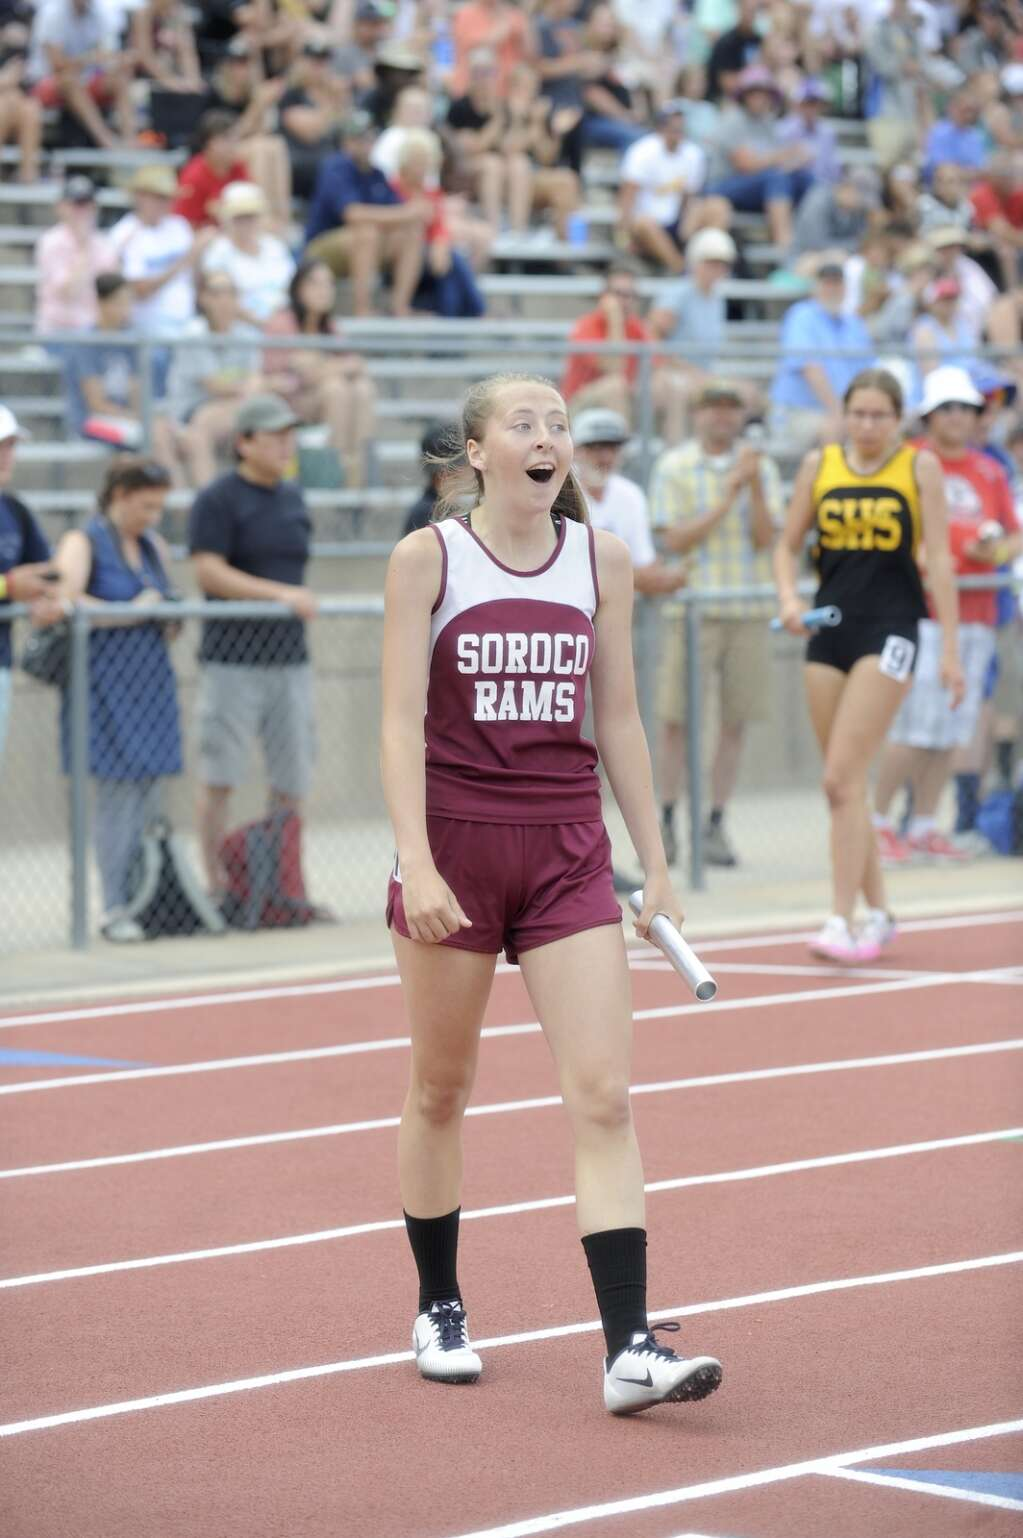 Soroco junior Kayedence Bruner reacts to seeing her team's time after winning the 4x200 prelims at the CHSAA Track and Field State Championships at JeffCo Stadium on Thursday. (Photo by Shelby Reardon)